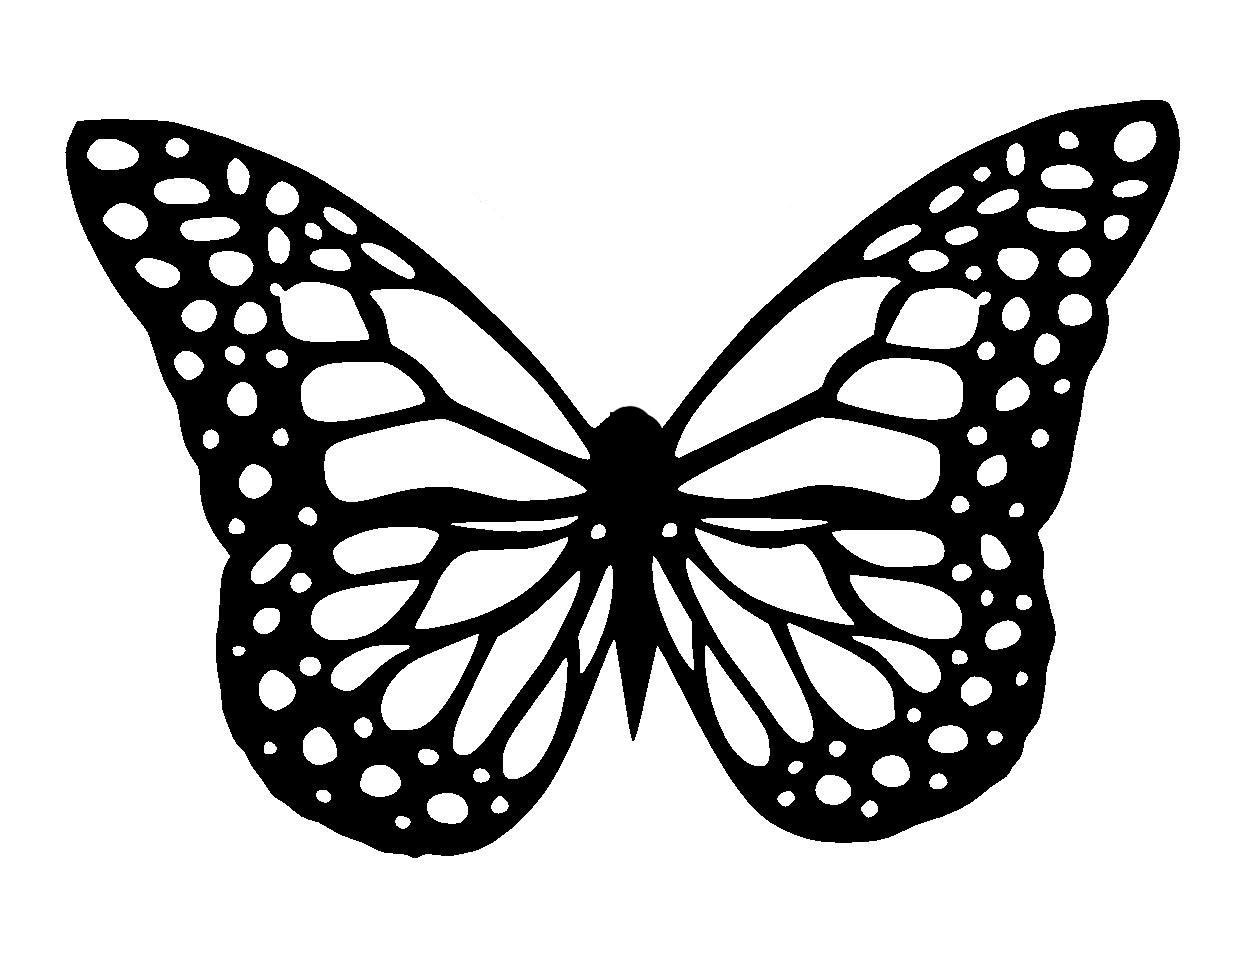 11.7/16.5 Butterfly stencil and template design 1. A3   Etsy